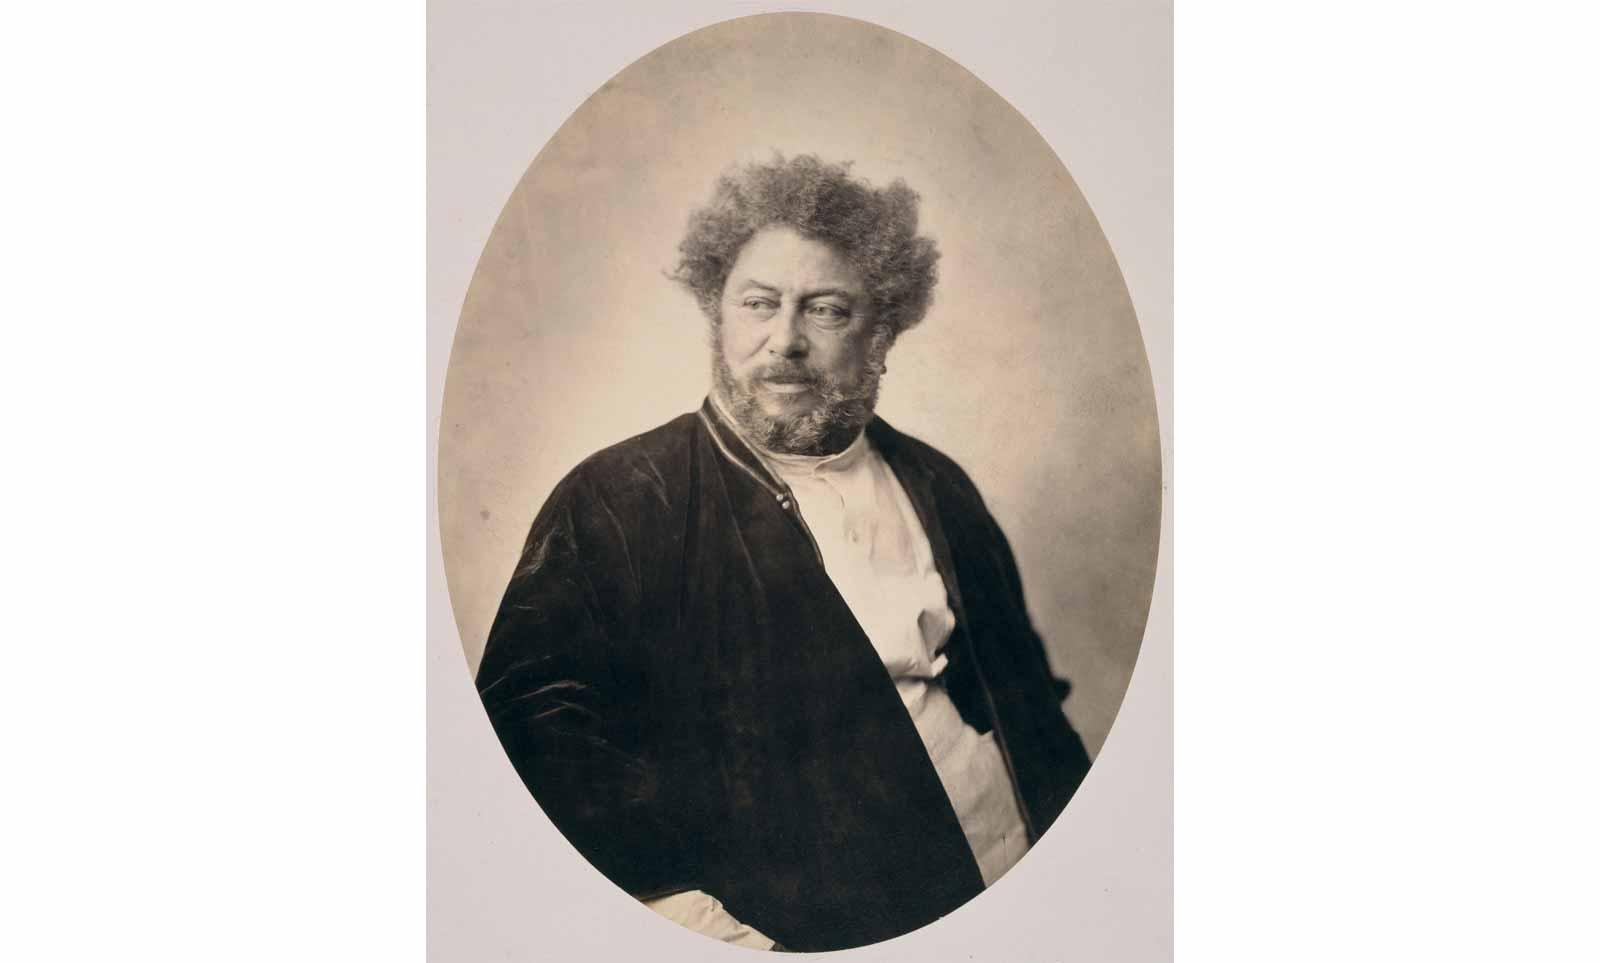 Gustave Le Gray (1820-1884), Portrait of Alexandre Dumas in Russian costume, 1859